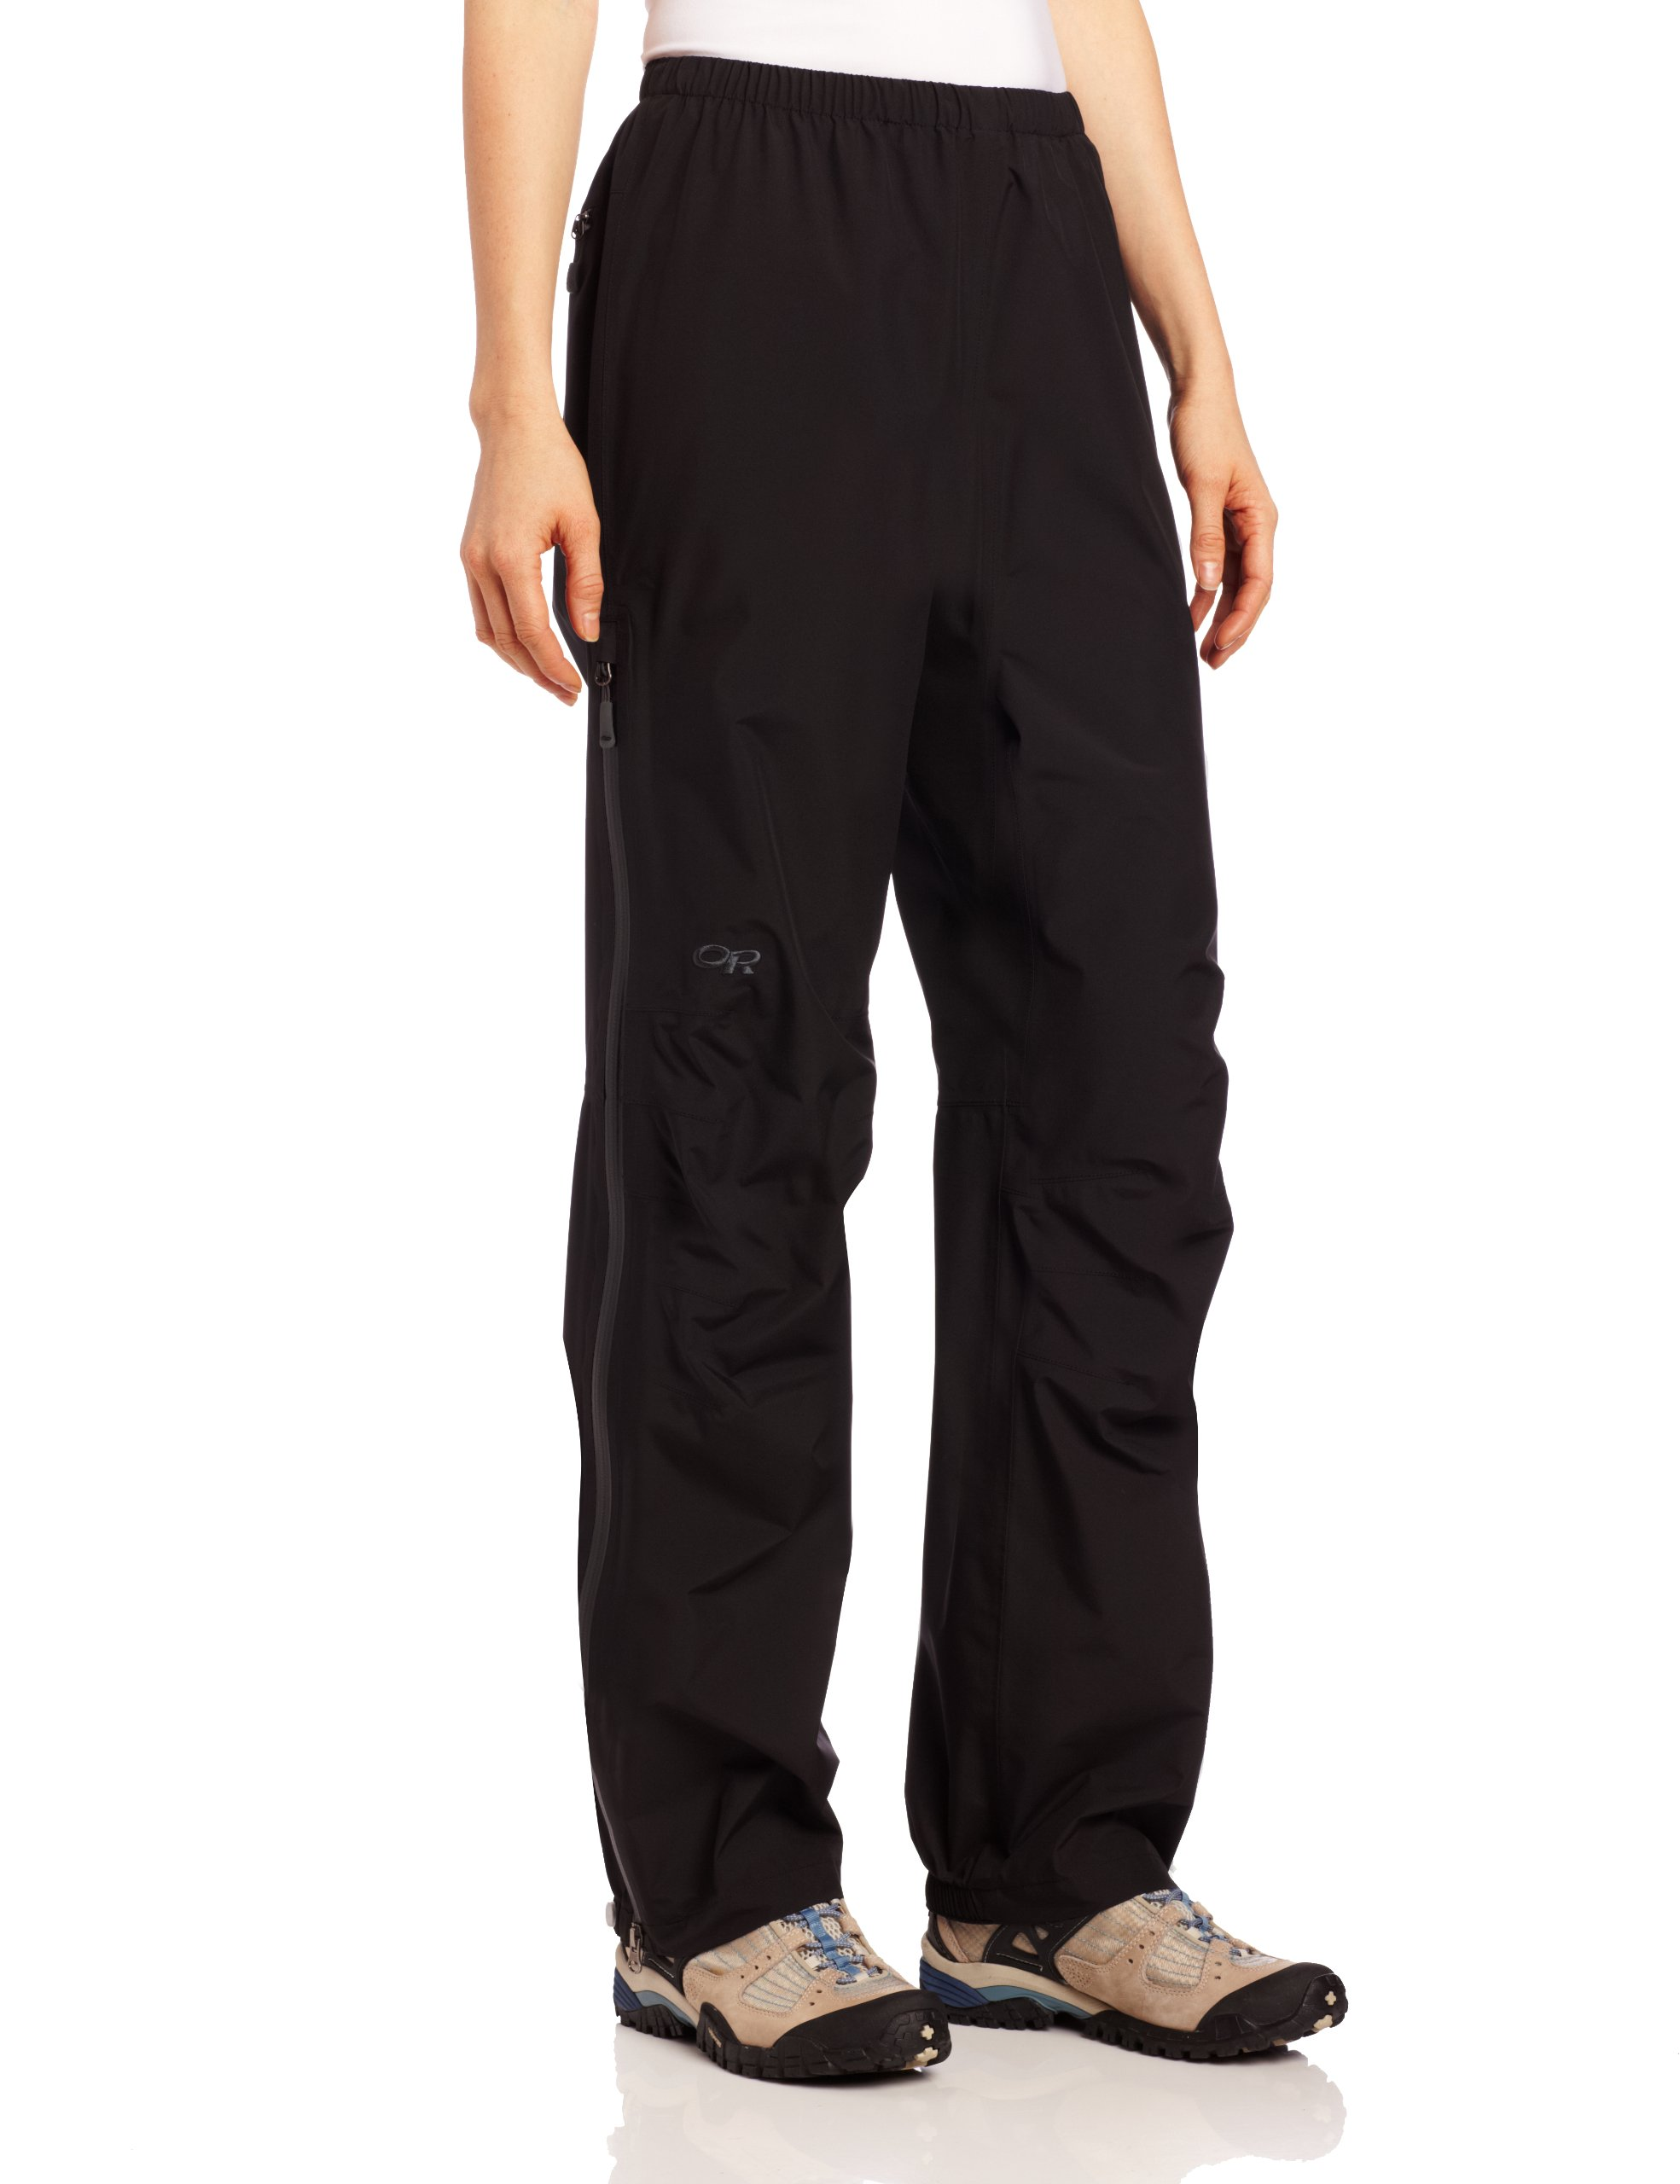 Outdoor Research Women's Aspire Pant, Black, Large by Outdoor Research